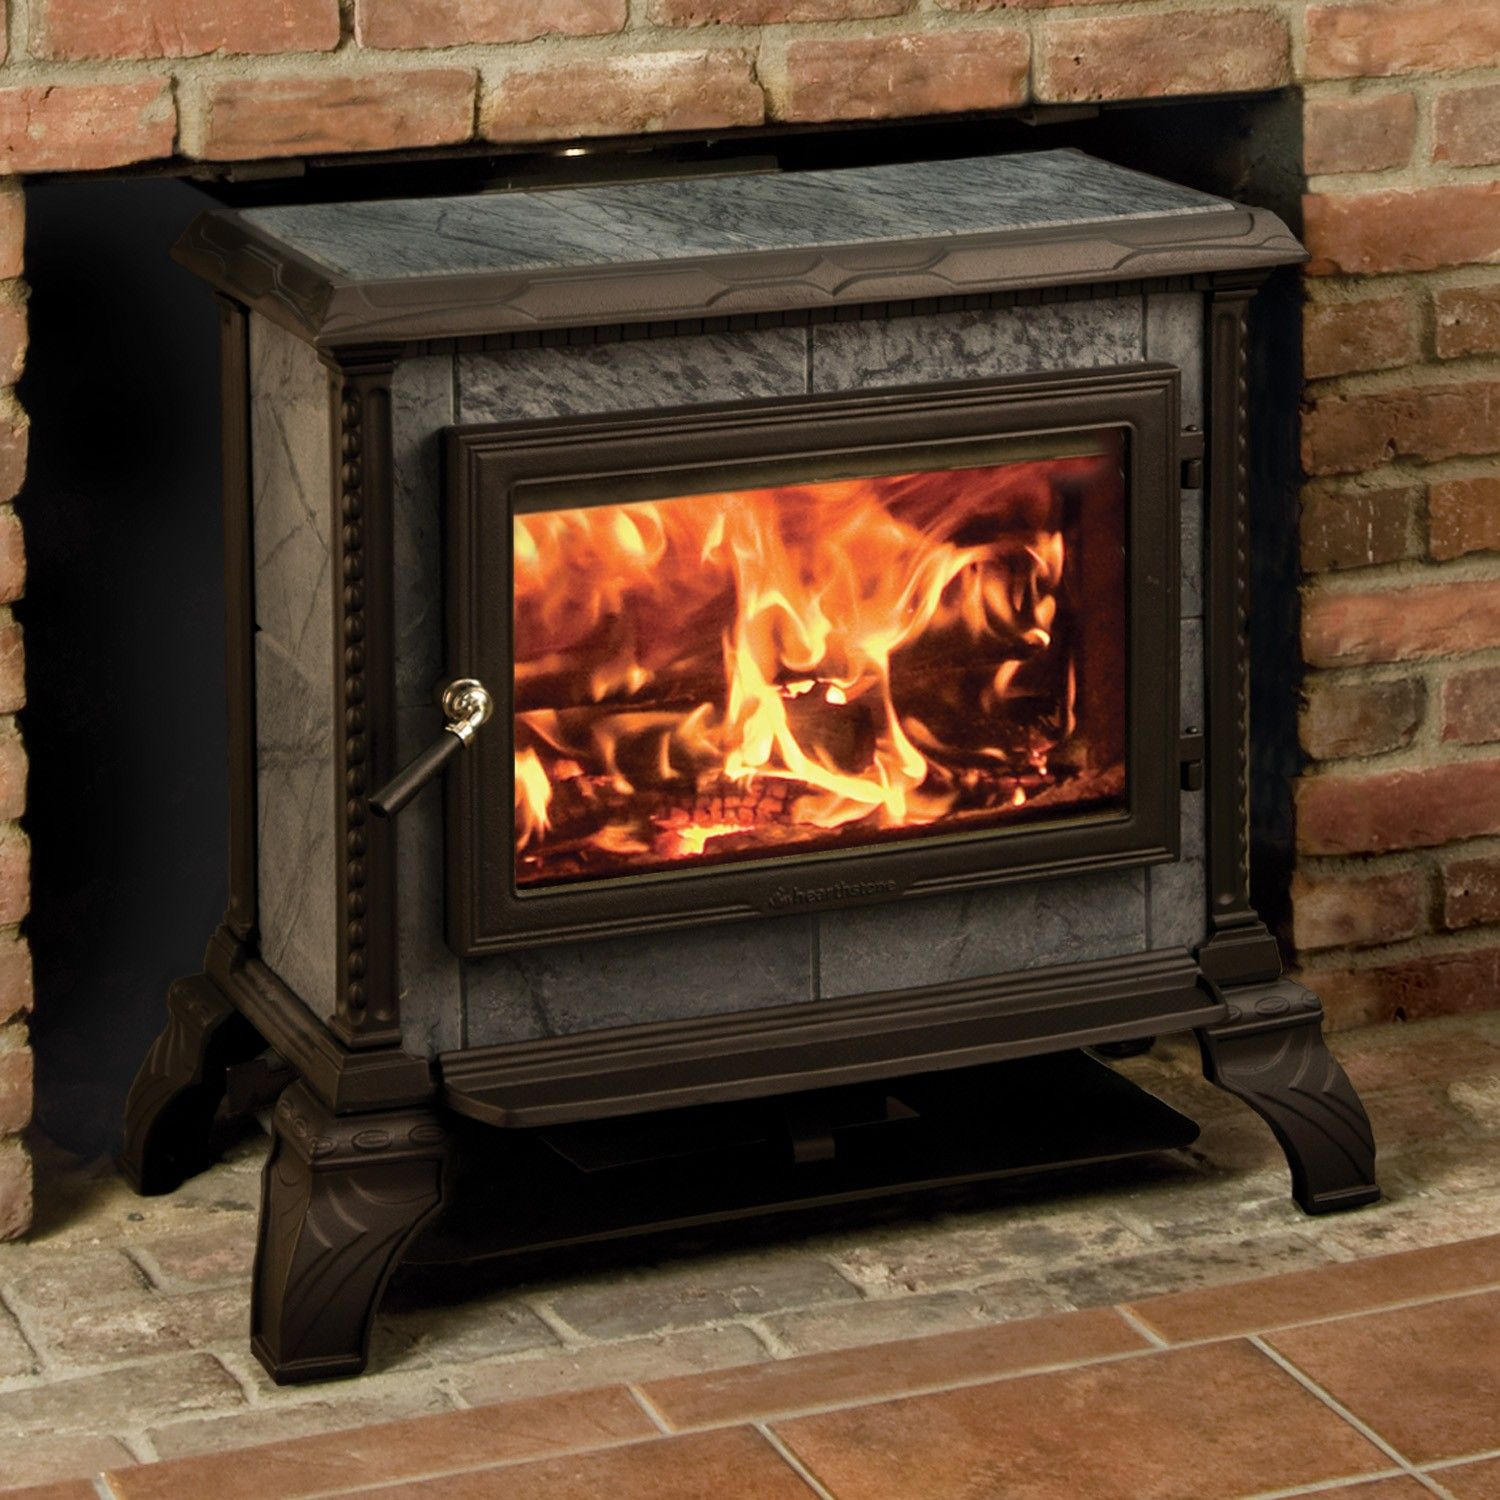 Hearthstone homestead one of the most efficient wood stoves out one of the most efficient wood stoves out there 835 teraionfo